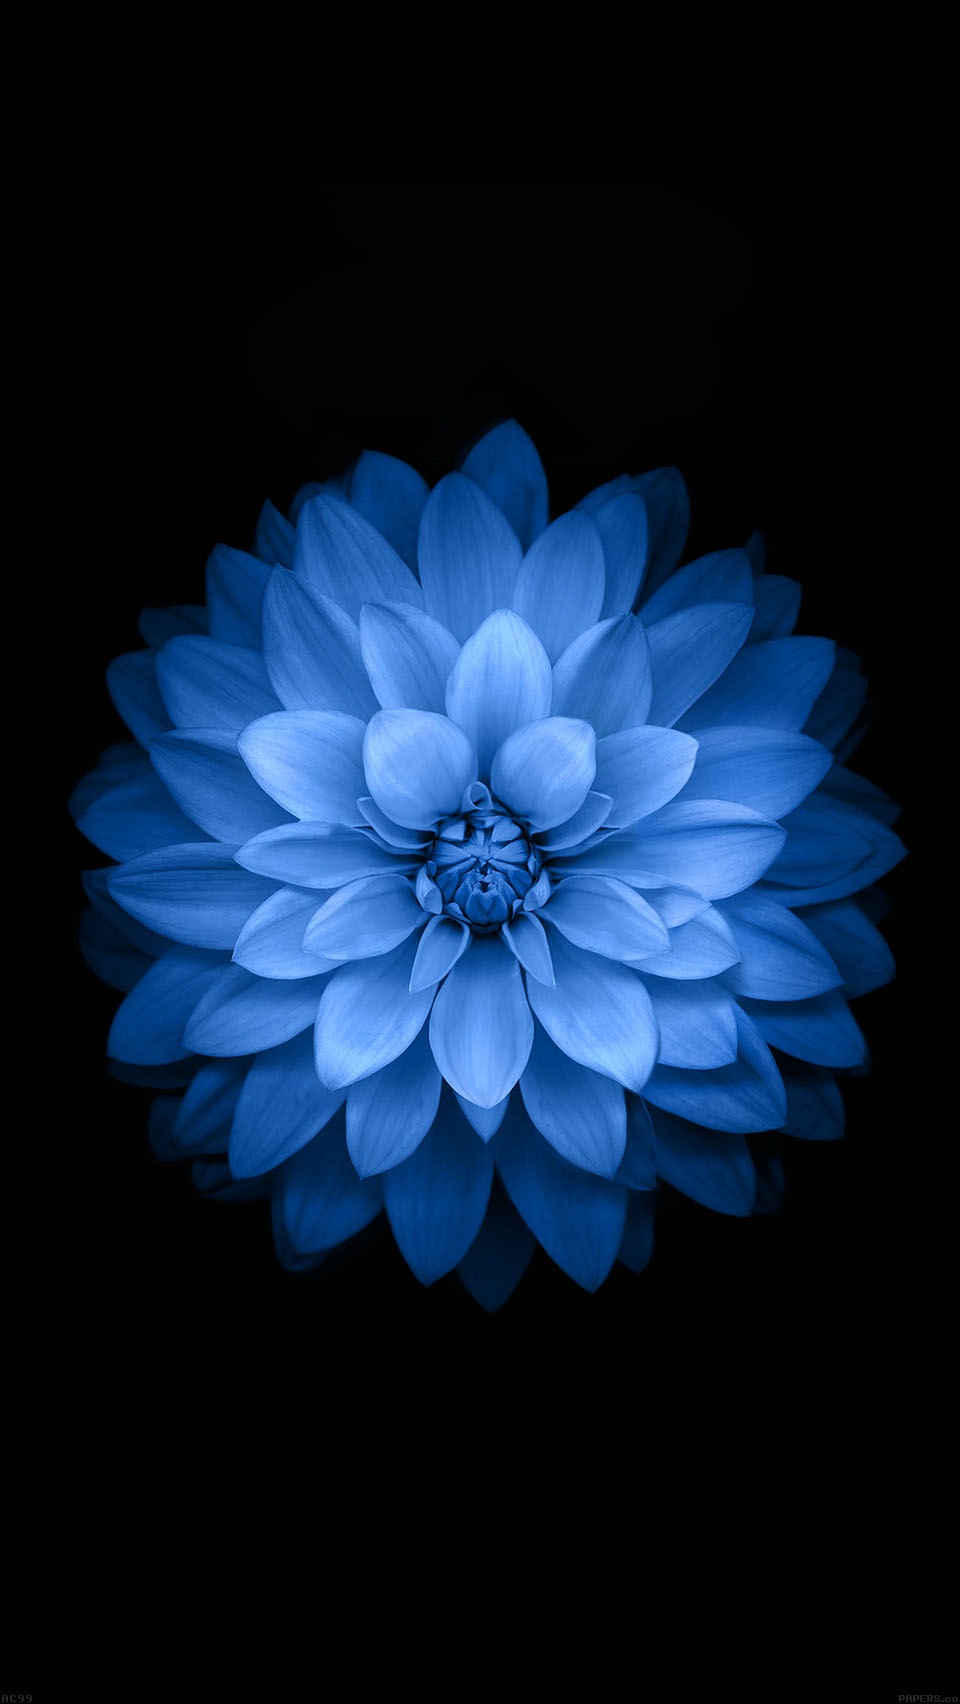 Free Download Blue Lotues Ios 8 Wallpaper Variant Iphone 6